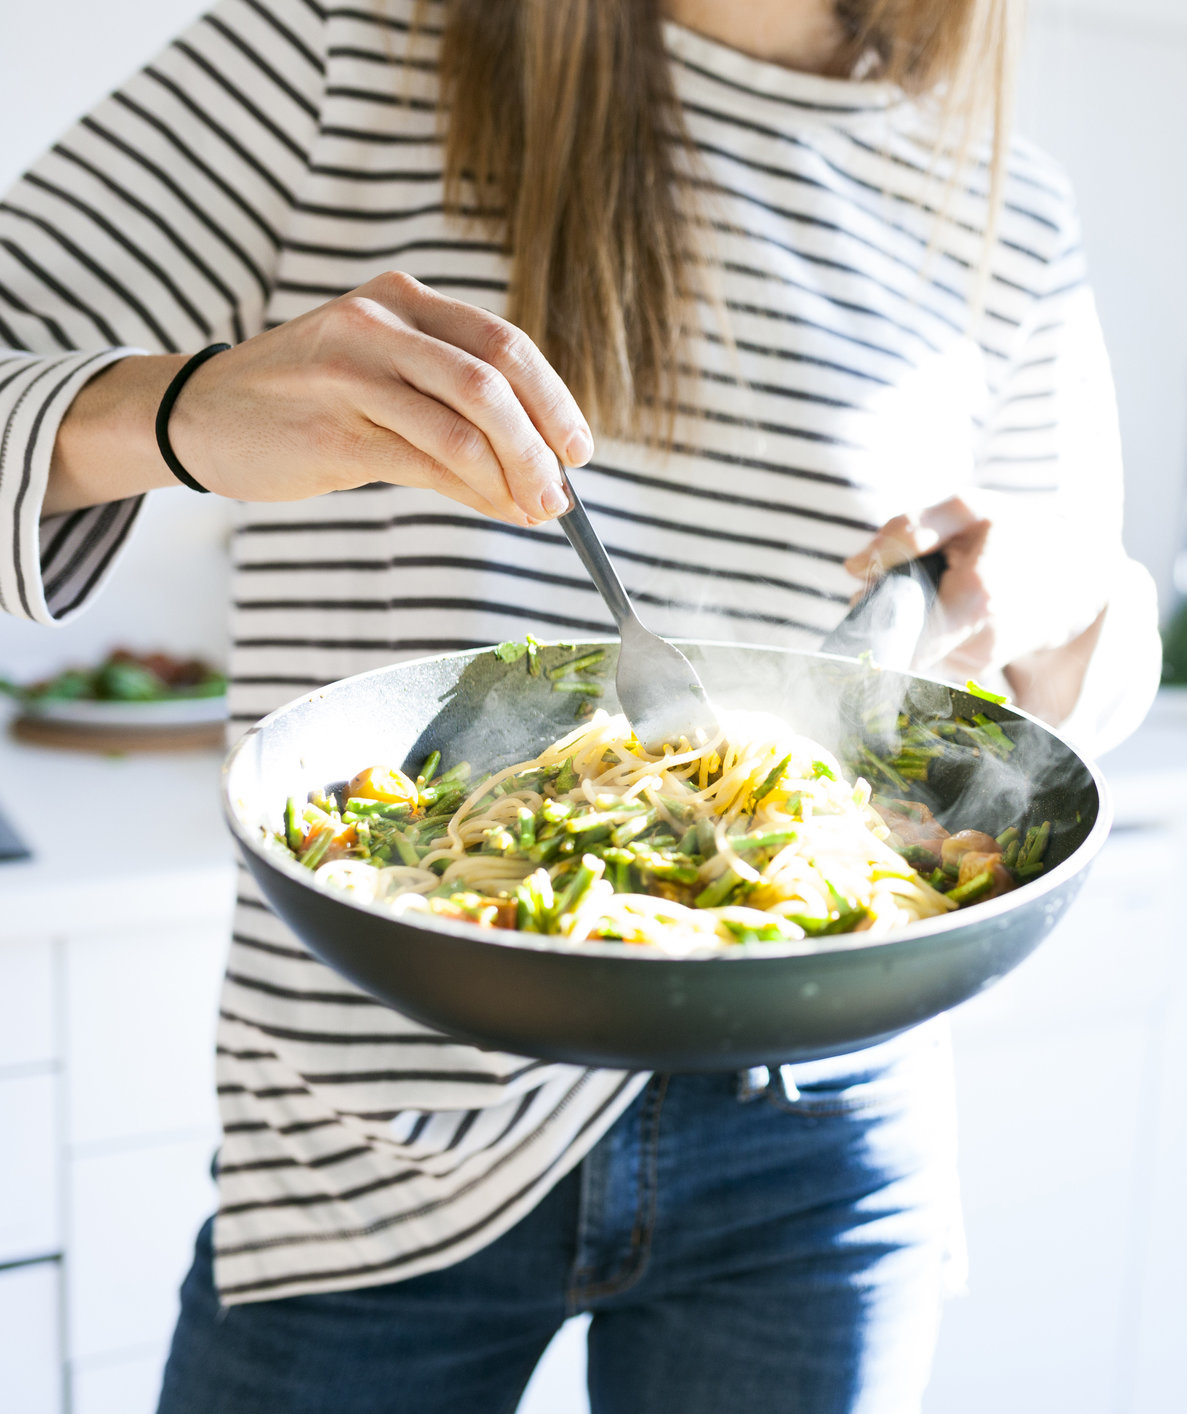 5 Genius Tricks for Cooking for One